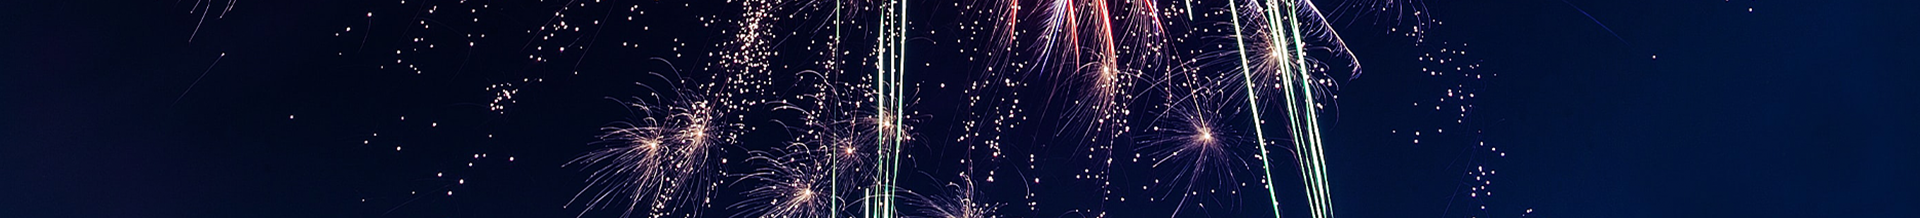 fourth of july graphic pack - fireworks